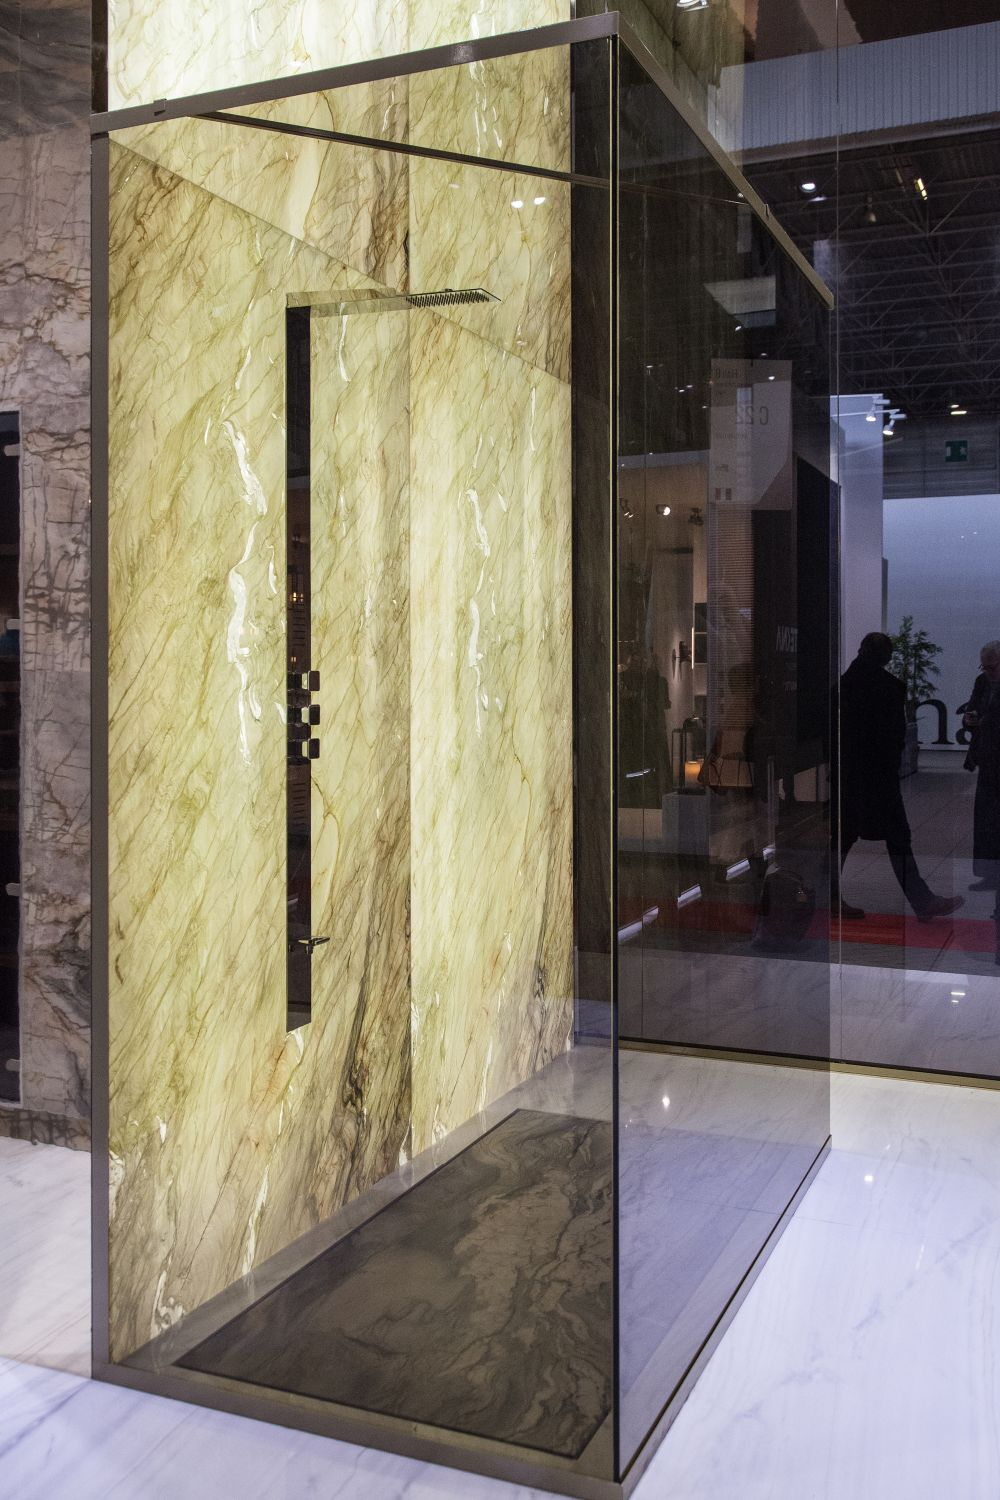 A marble shower can potentially be an exquisite bathroom feature worthy of all the attention